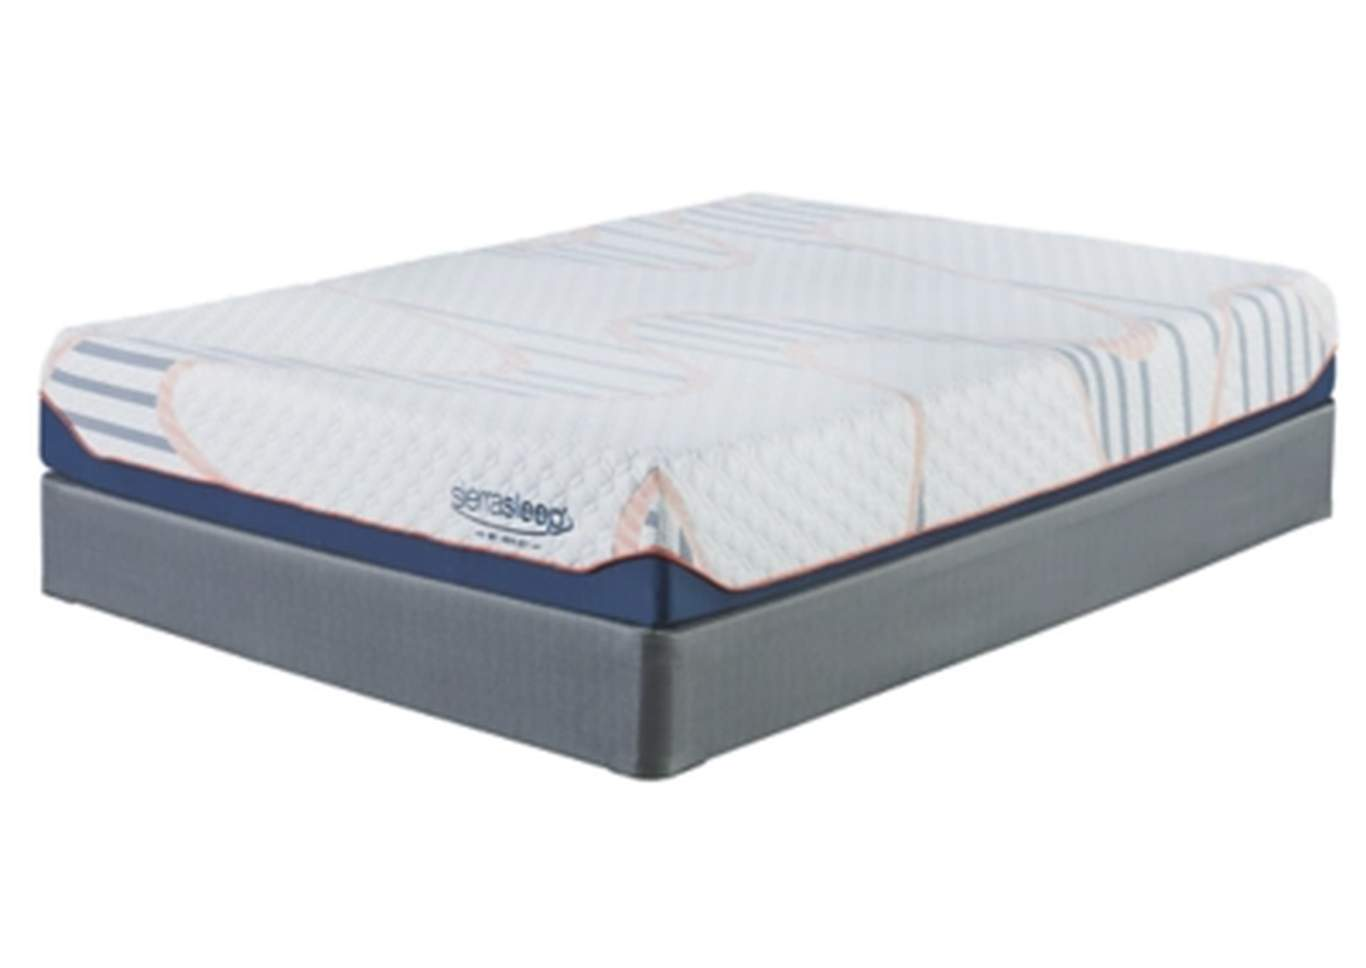 10 Inch MyGel California King Mattress,Sierra Sleep by Ashley